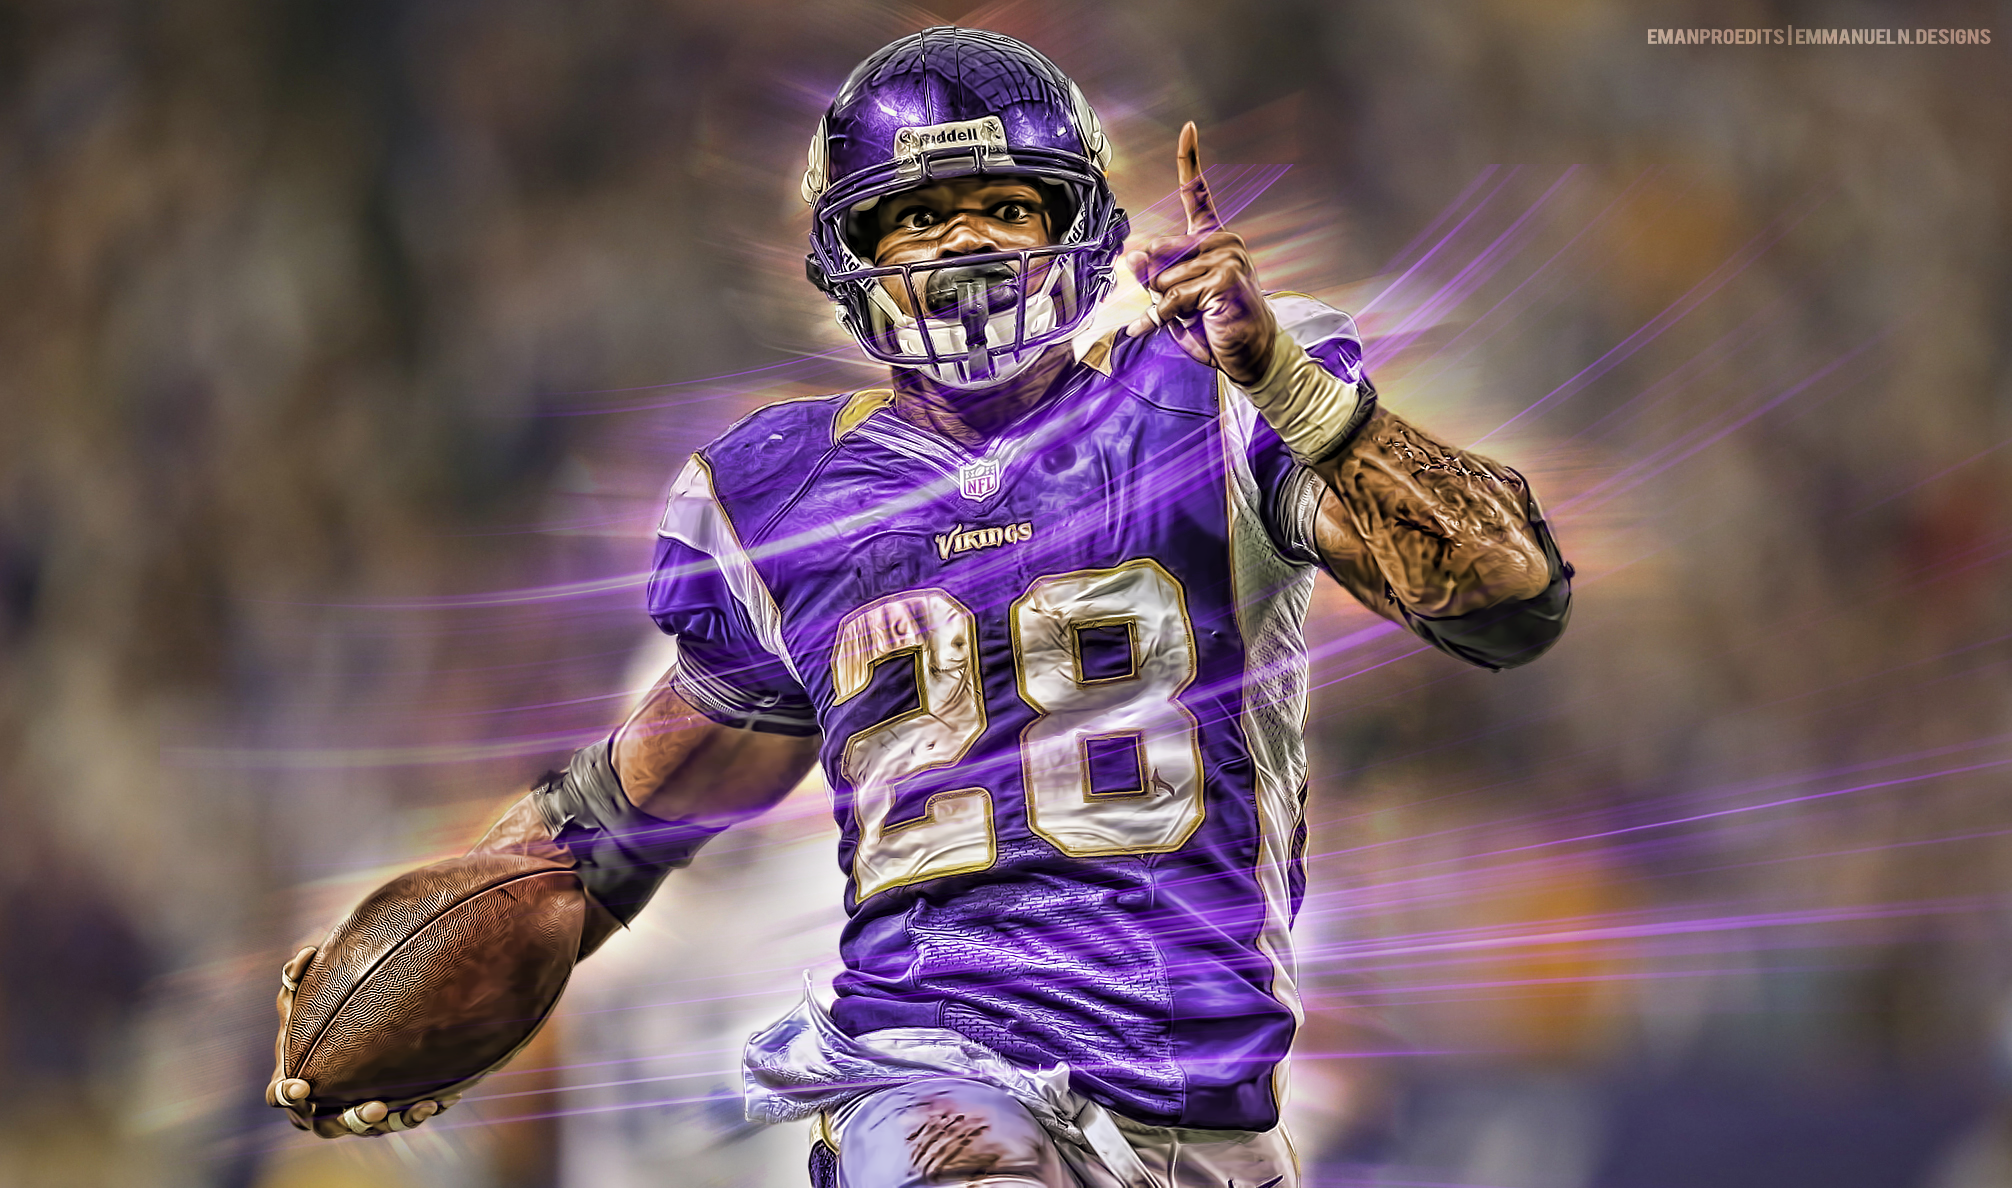 Cool Nfl Player Edits: Adrian Peterson Wallpaper By Emanproedits On DeviantArt